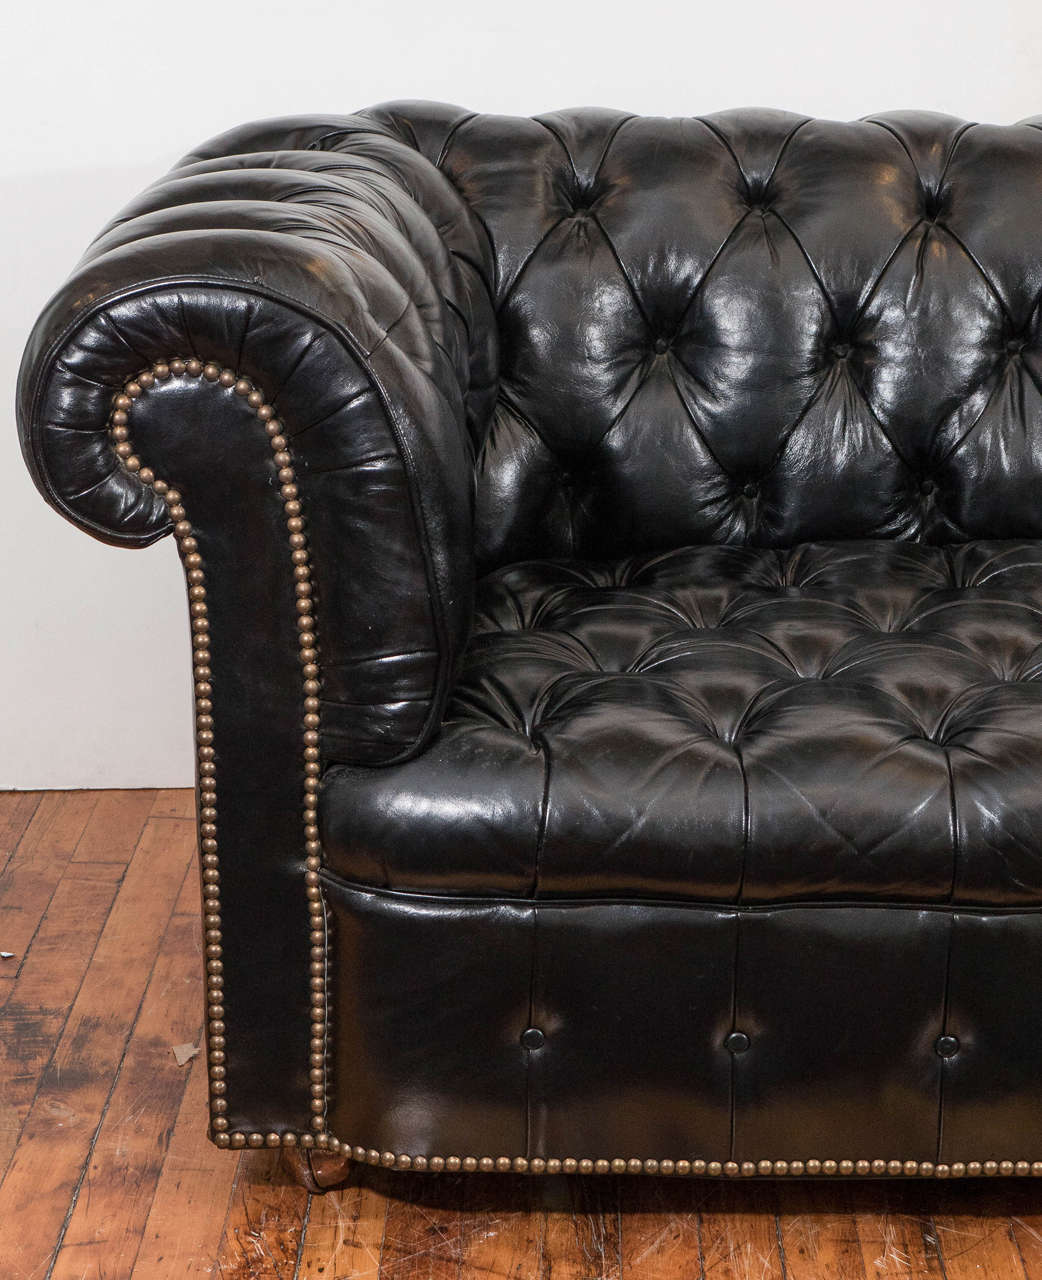 Black Leather Chesterfield Sofa - Frasesdeconquista.com -